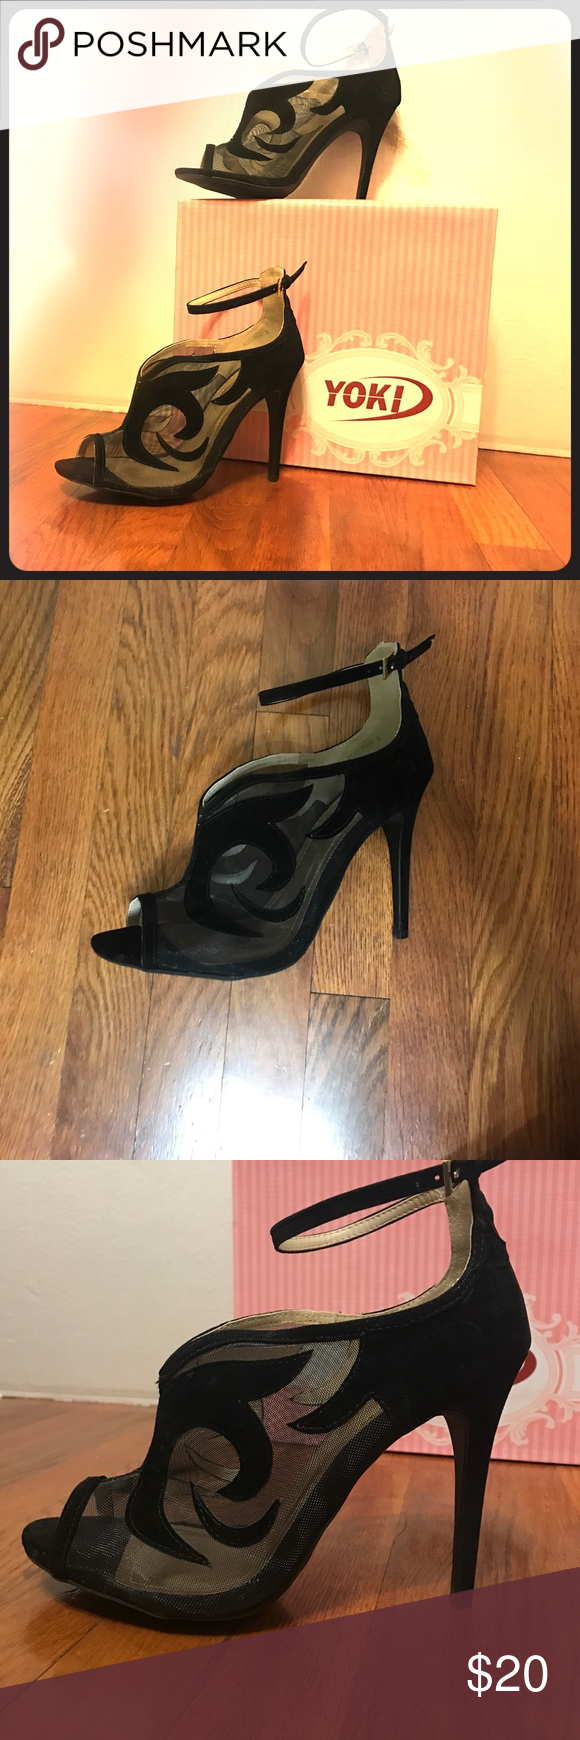 YOKI Shoe Style: Adelpha                                                           Color: Black                                                                            Material: Suede and Mesh                                                      Size: 8 Yoki Shoes Heels